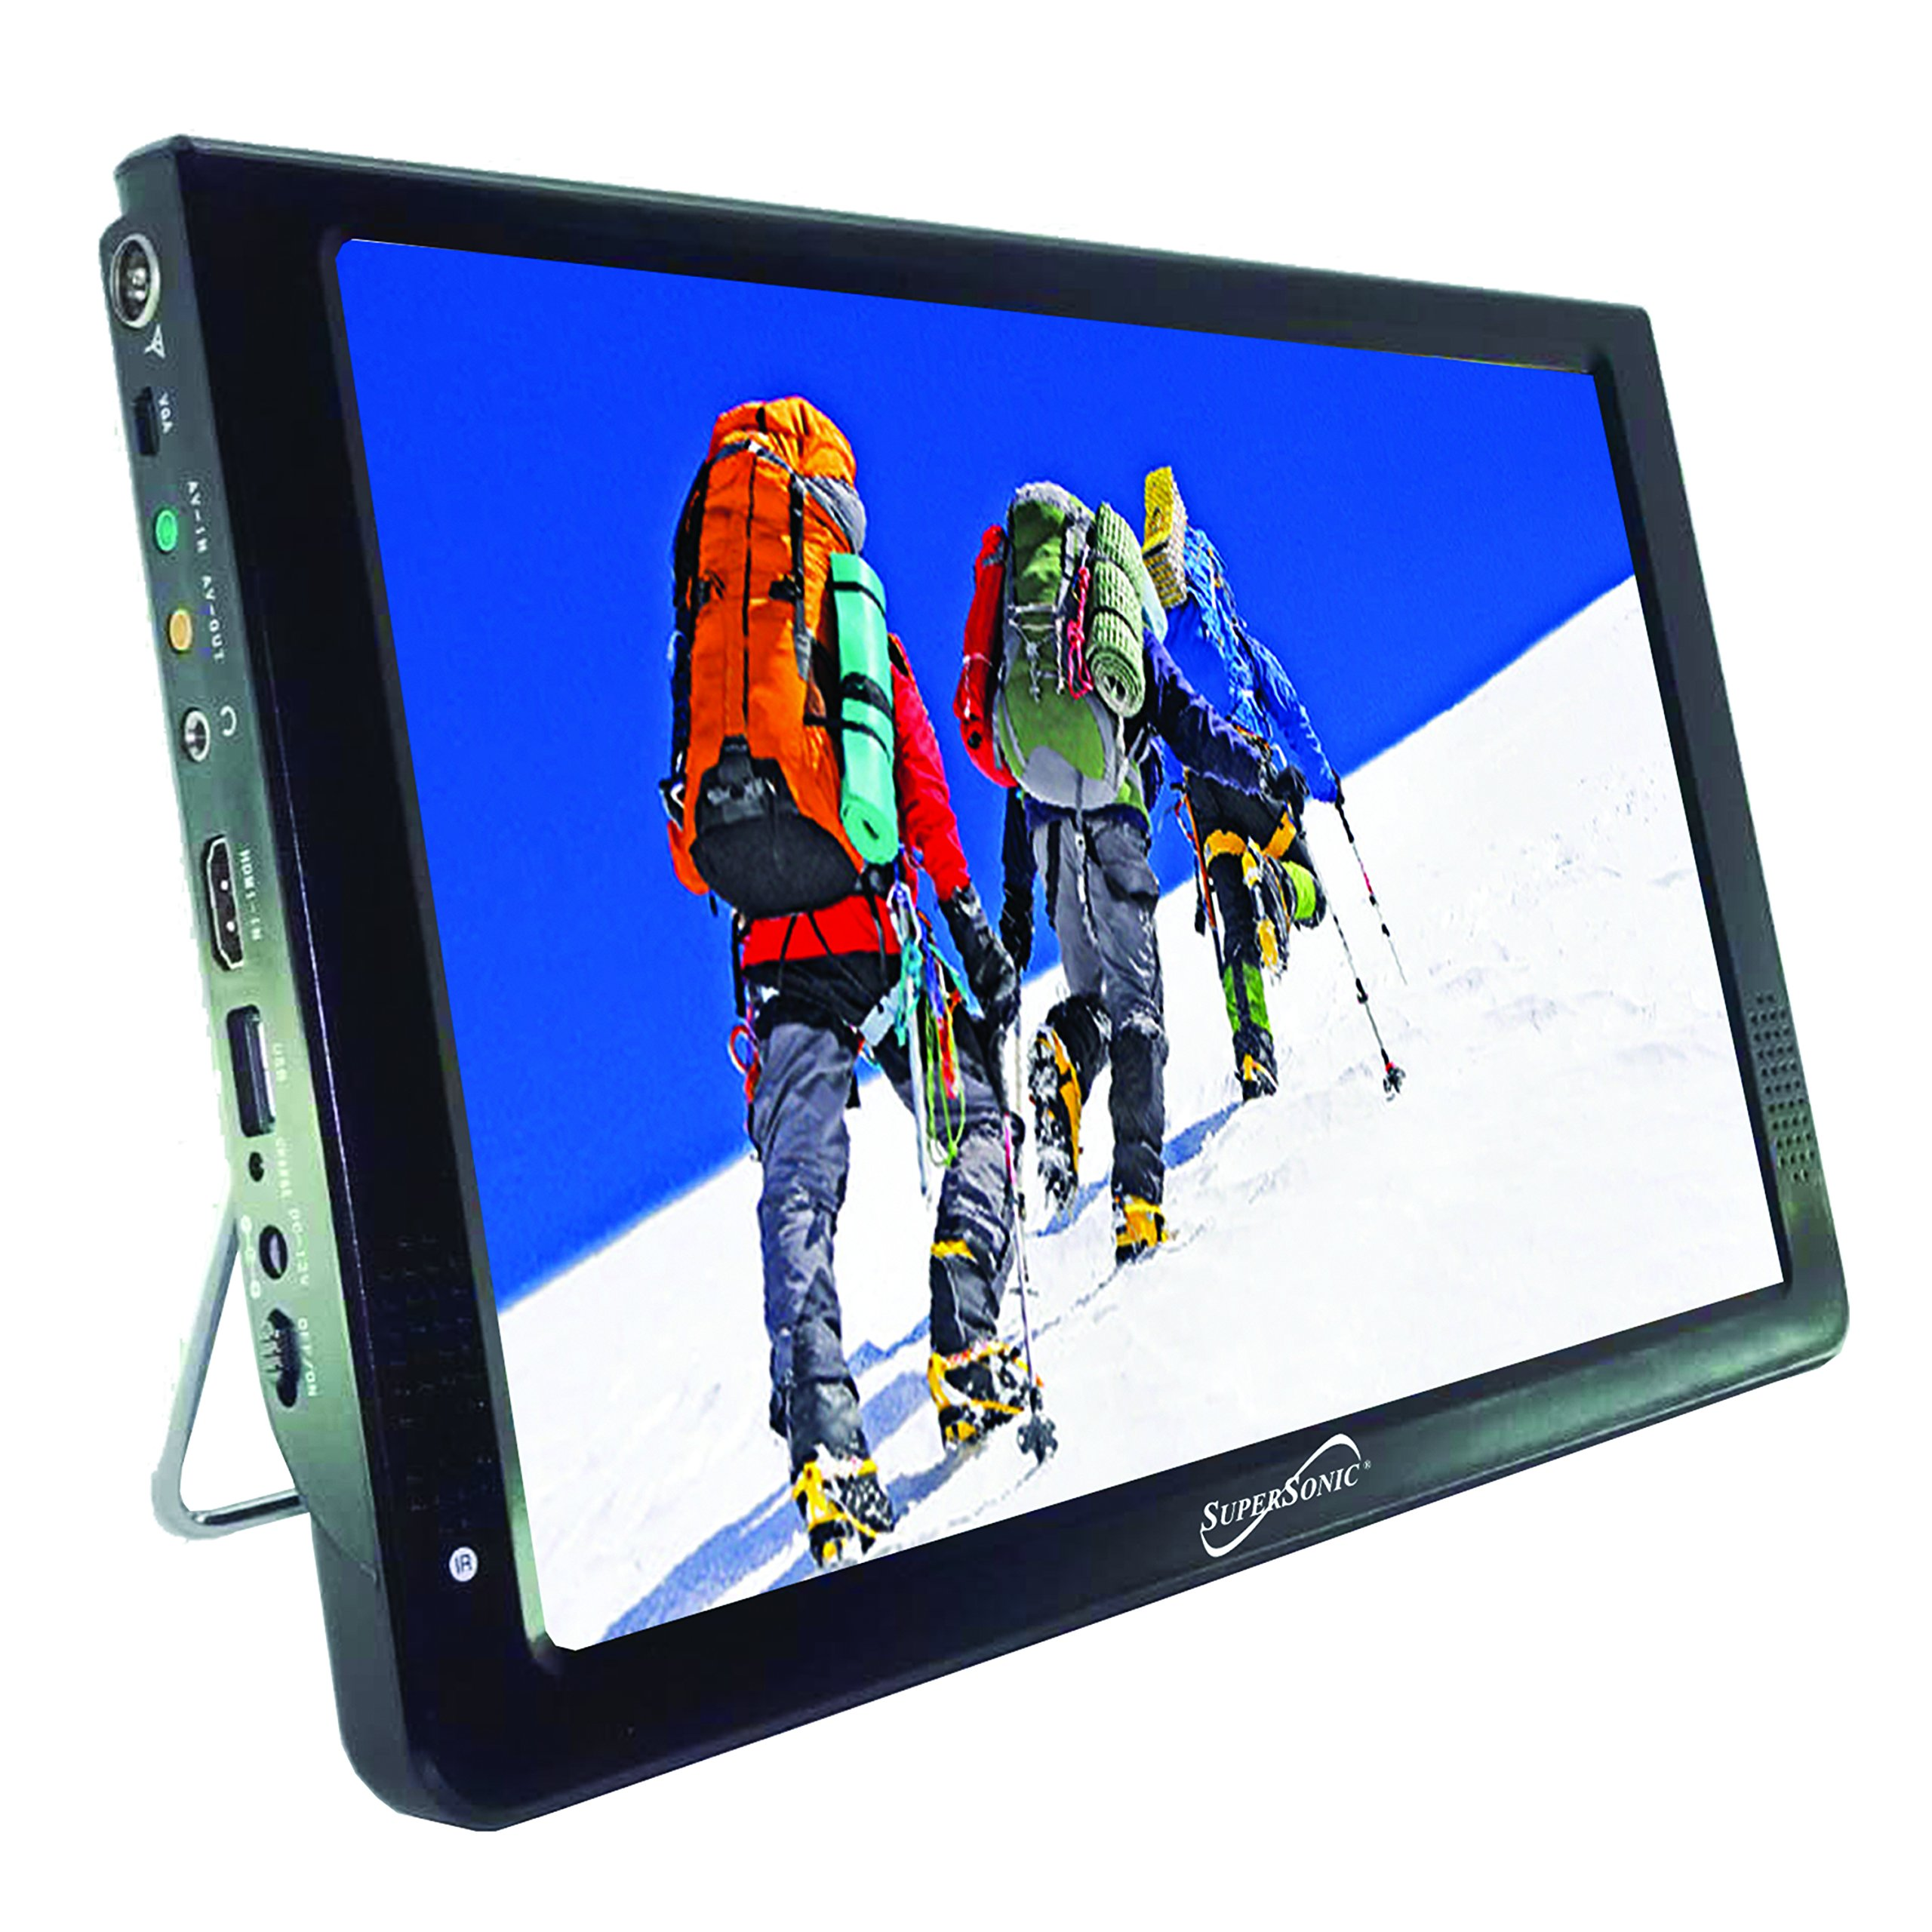 SuperSonic SC-2812 Portable Widescreen LCD Display with Digital TV Tuner, USB/SD Inputs and AC/DC Compatible for RVs (12-inch) by Supersonic